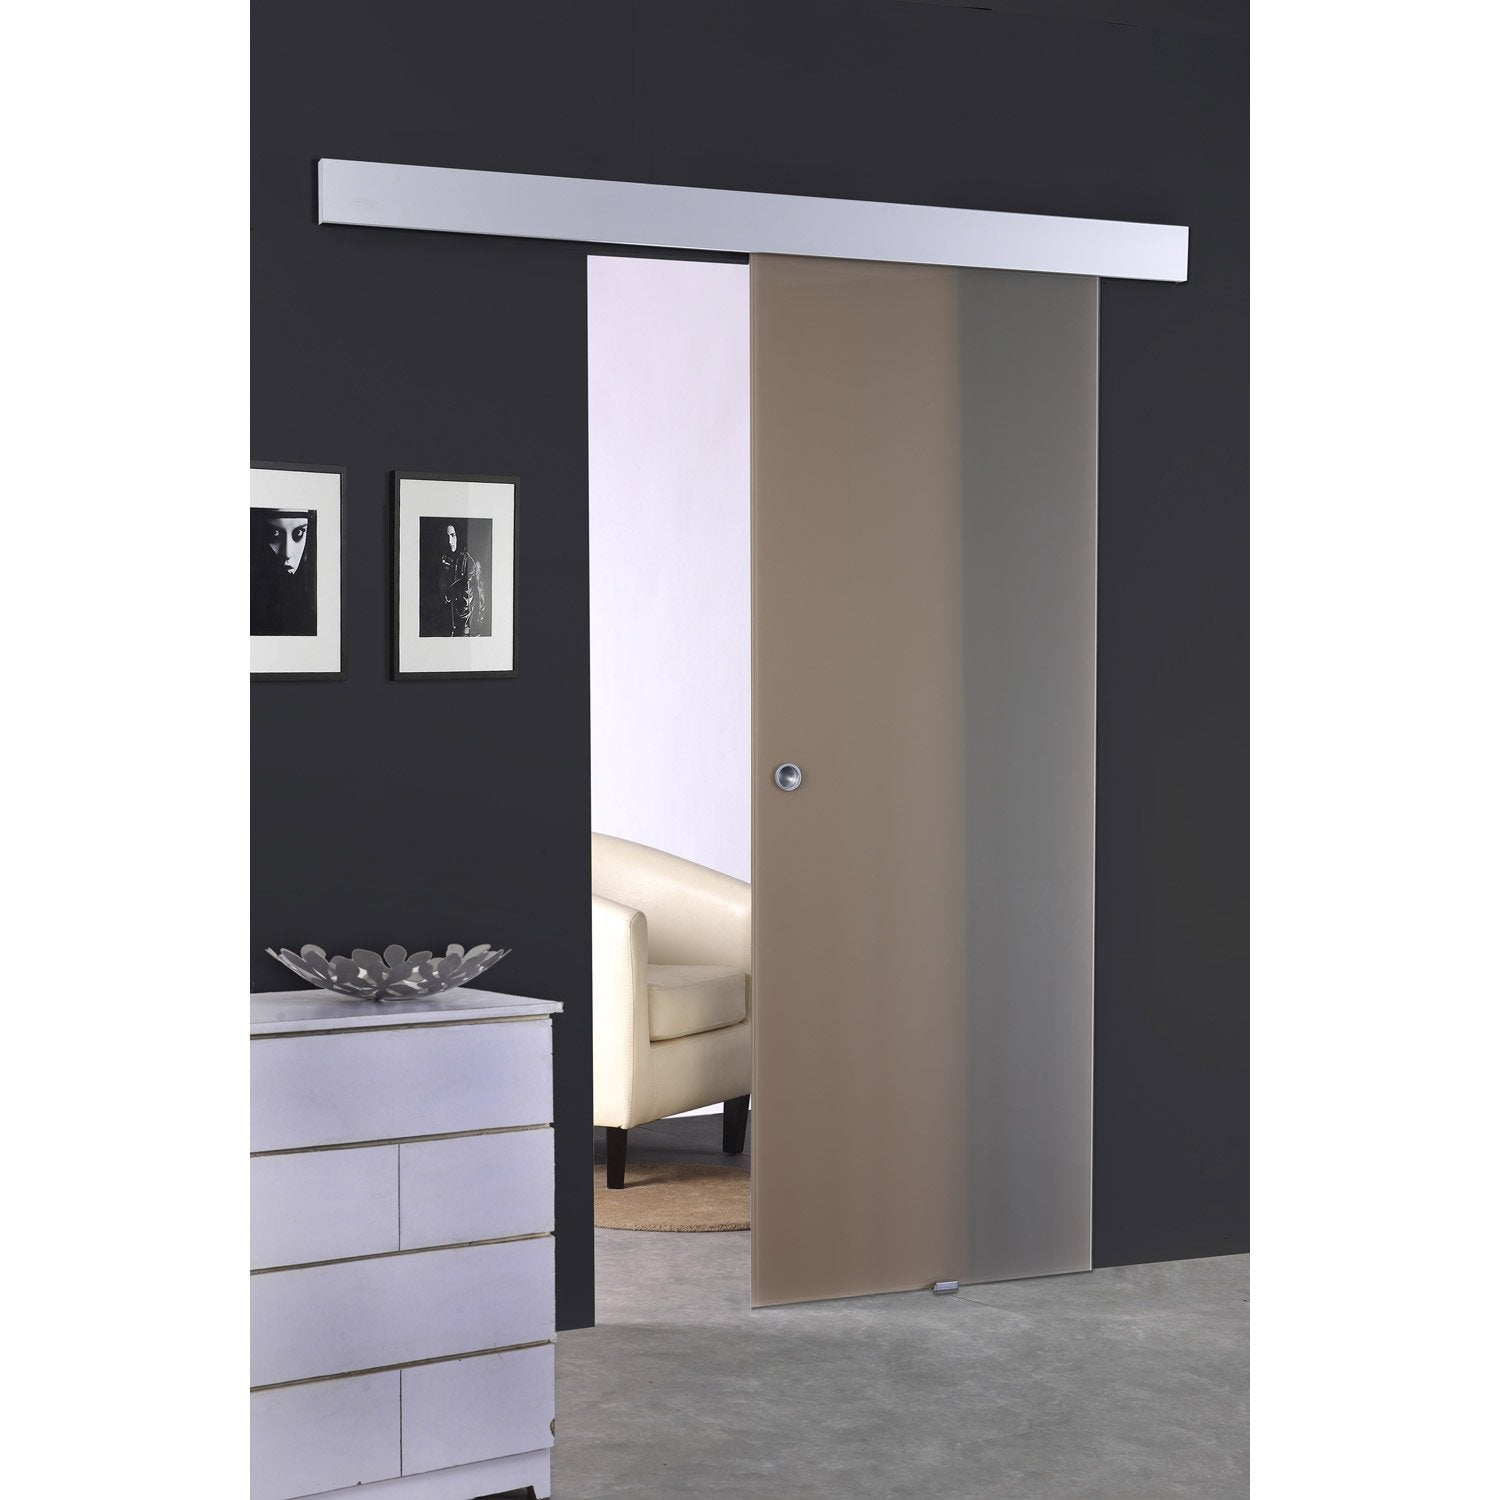 Porte coulissante en verre leroy merlin maison design for Porte extensible leroy merlin